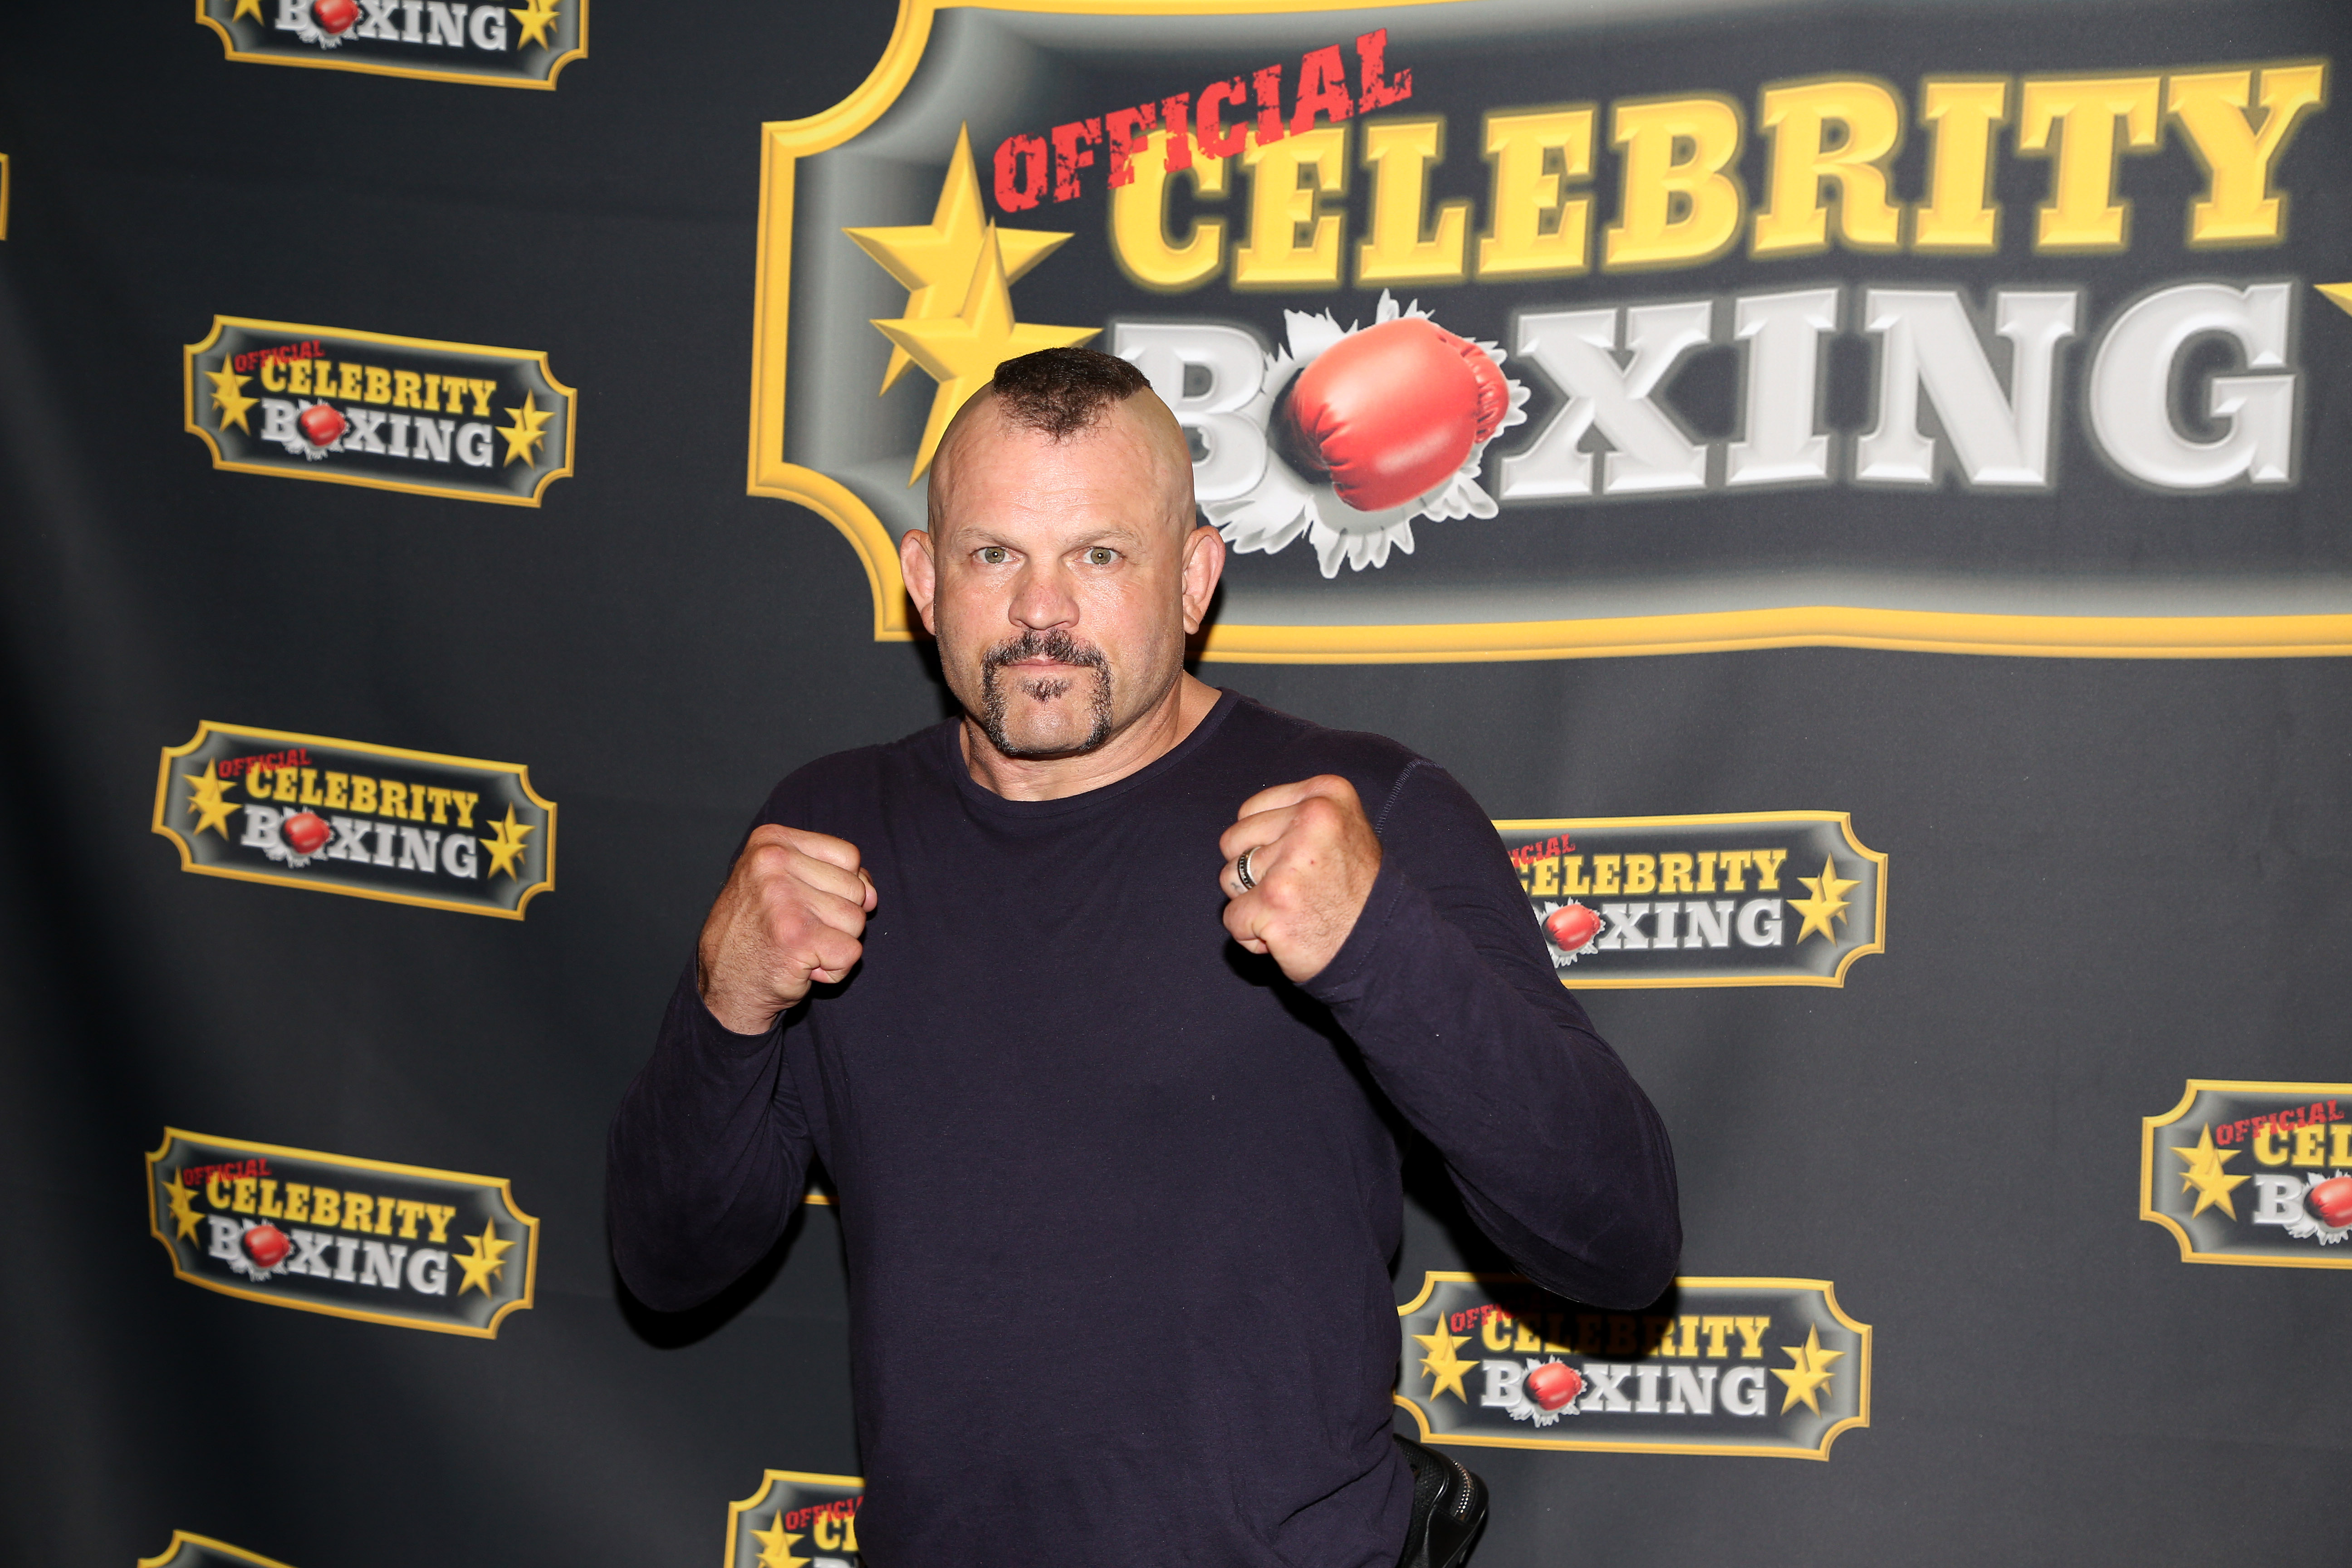 Chuck Liddell at the Lamar Odom vs. Aaron Carter celebrity boxing event.